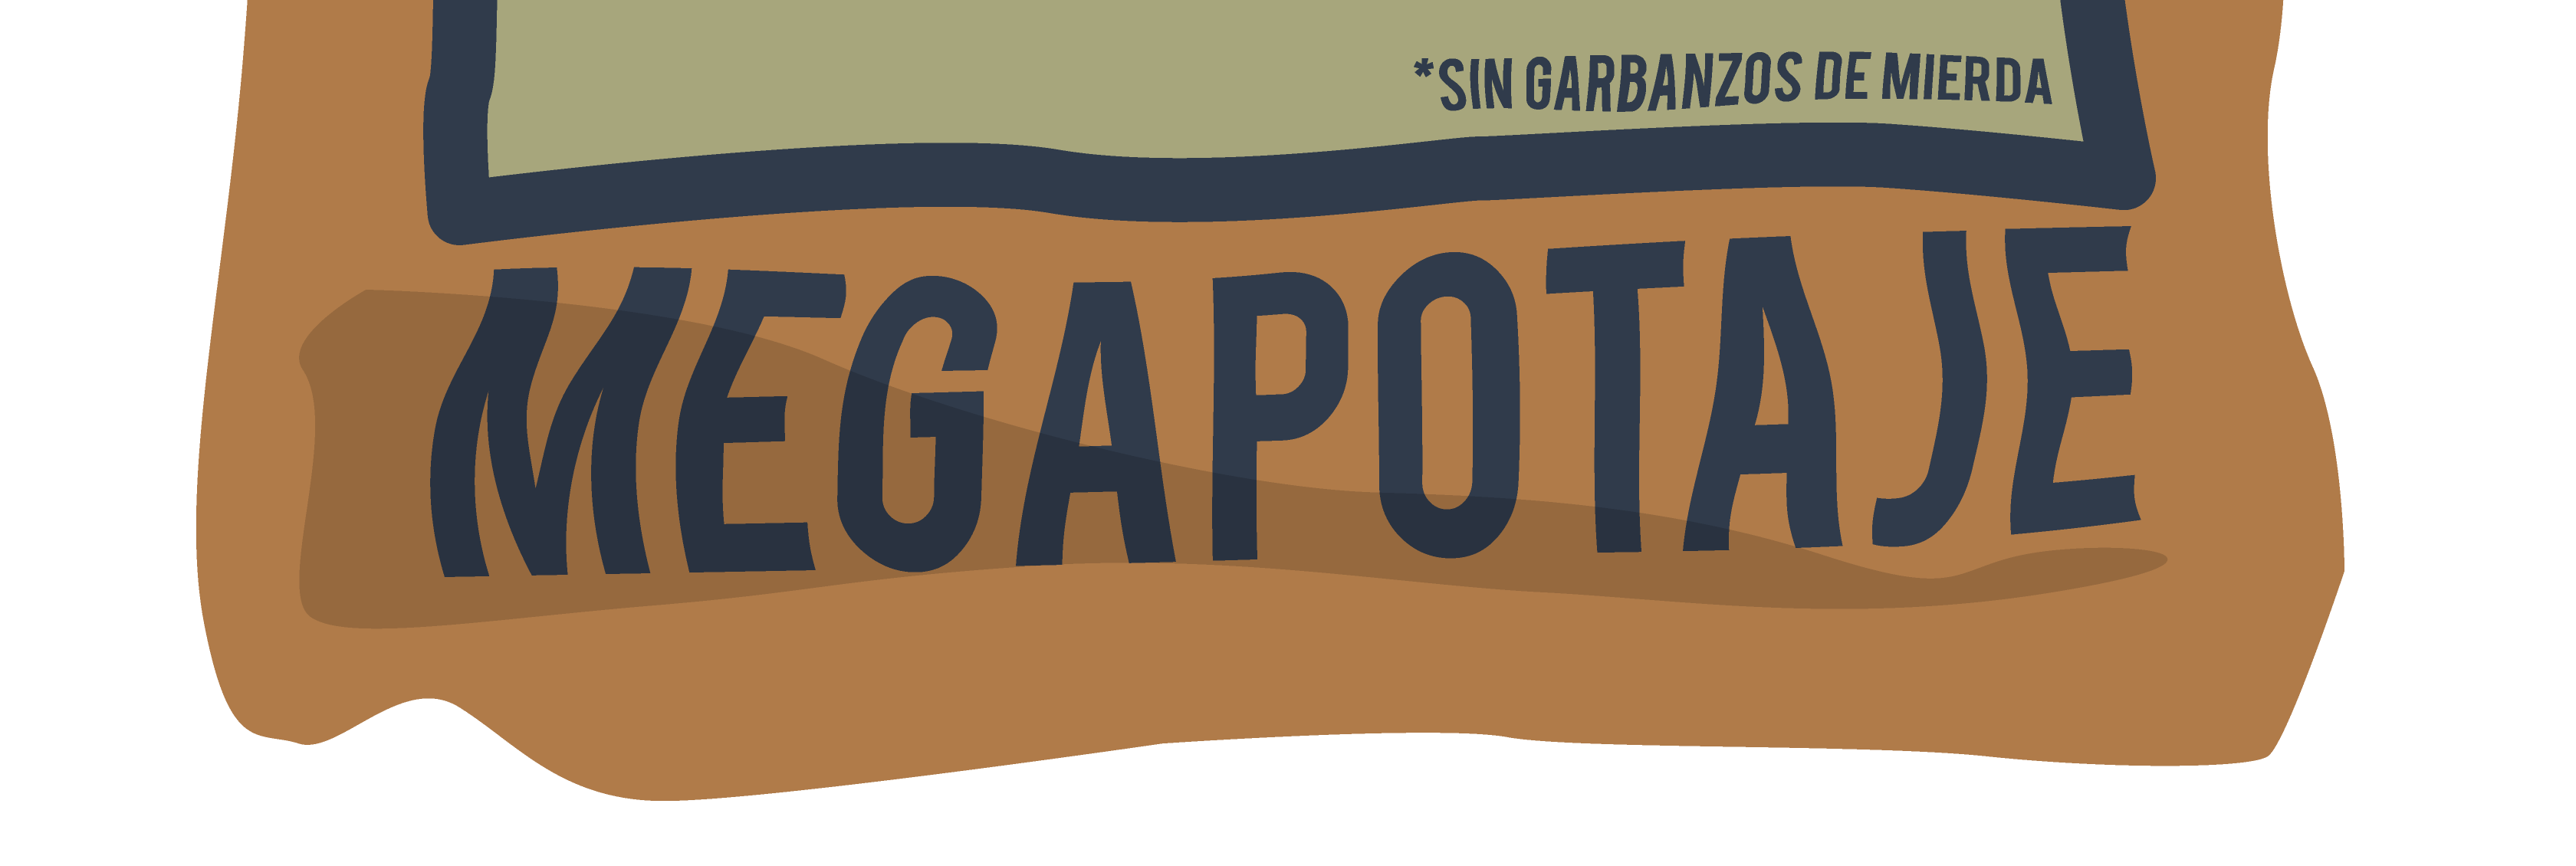 Garbanzo García